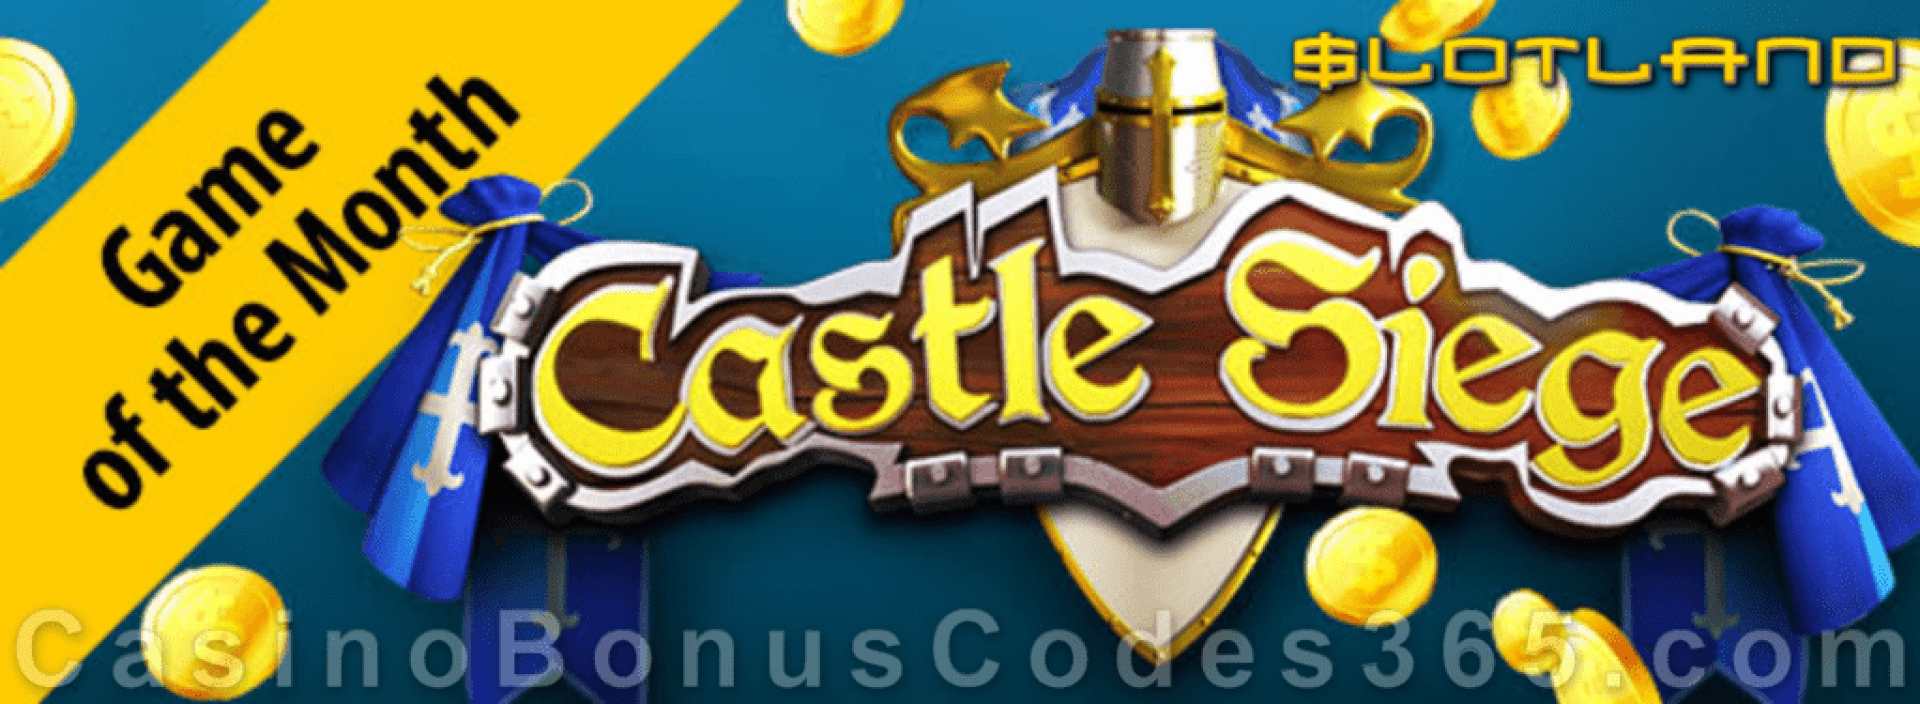 Slotland Casino Castle Siege June Game of the Month